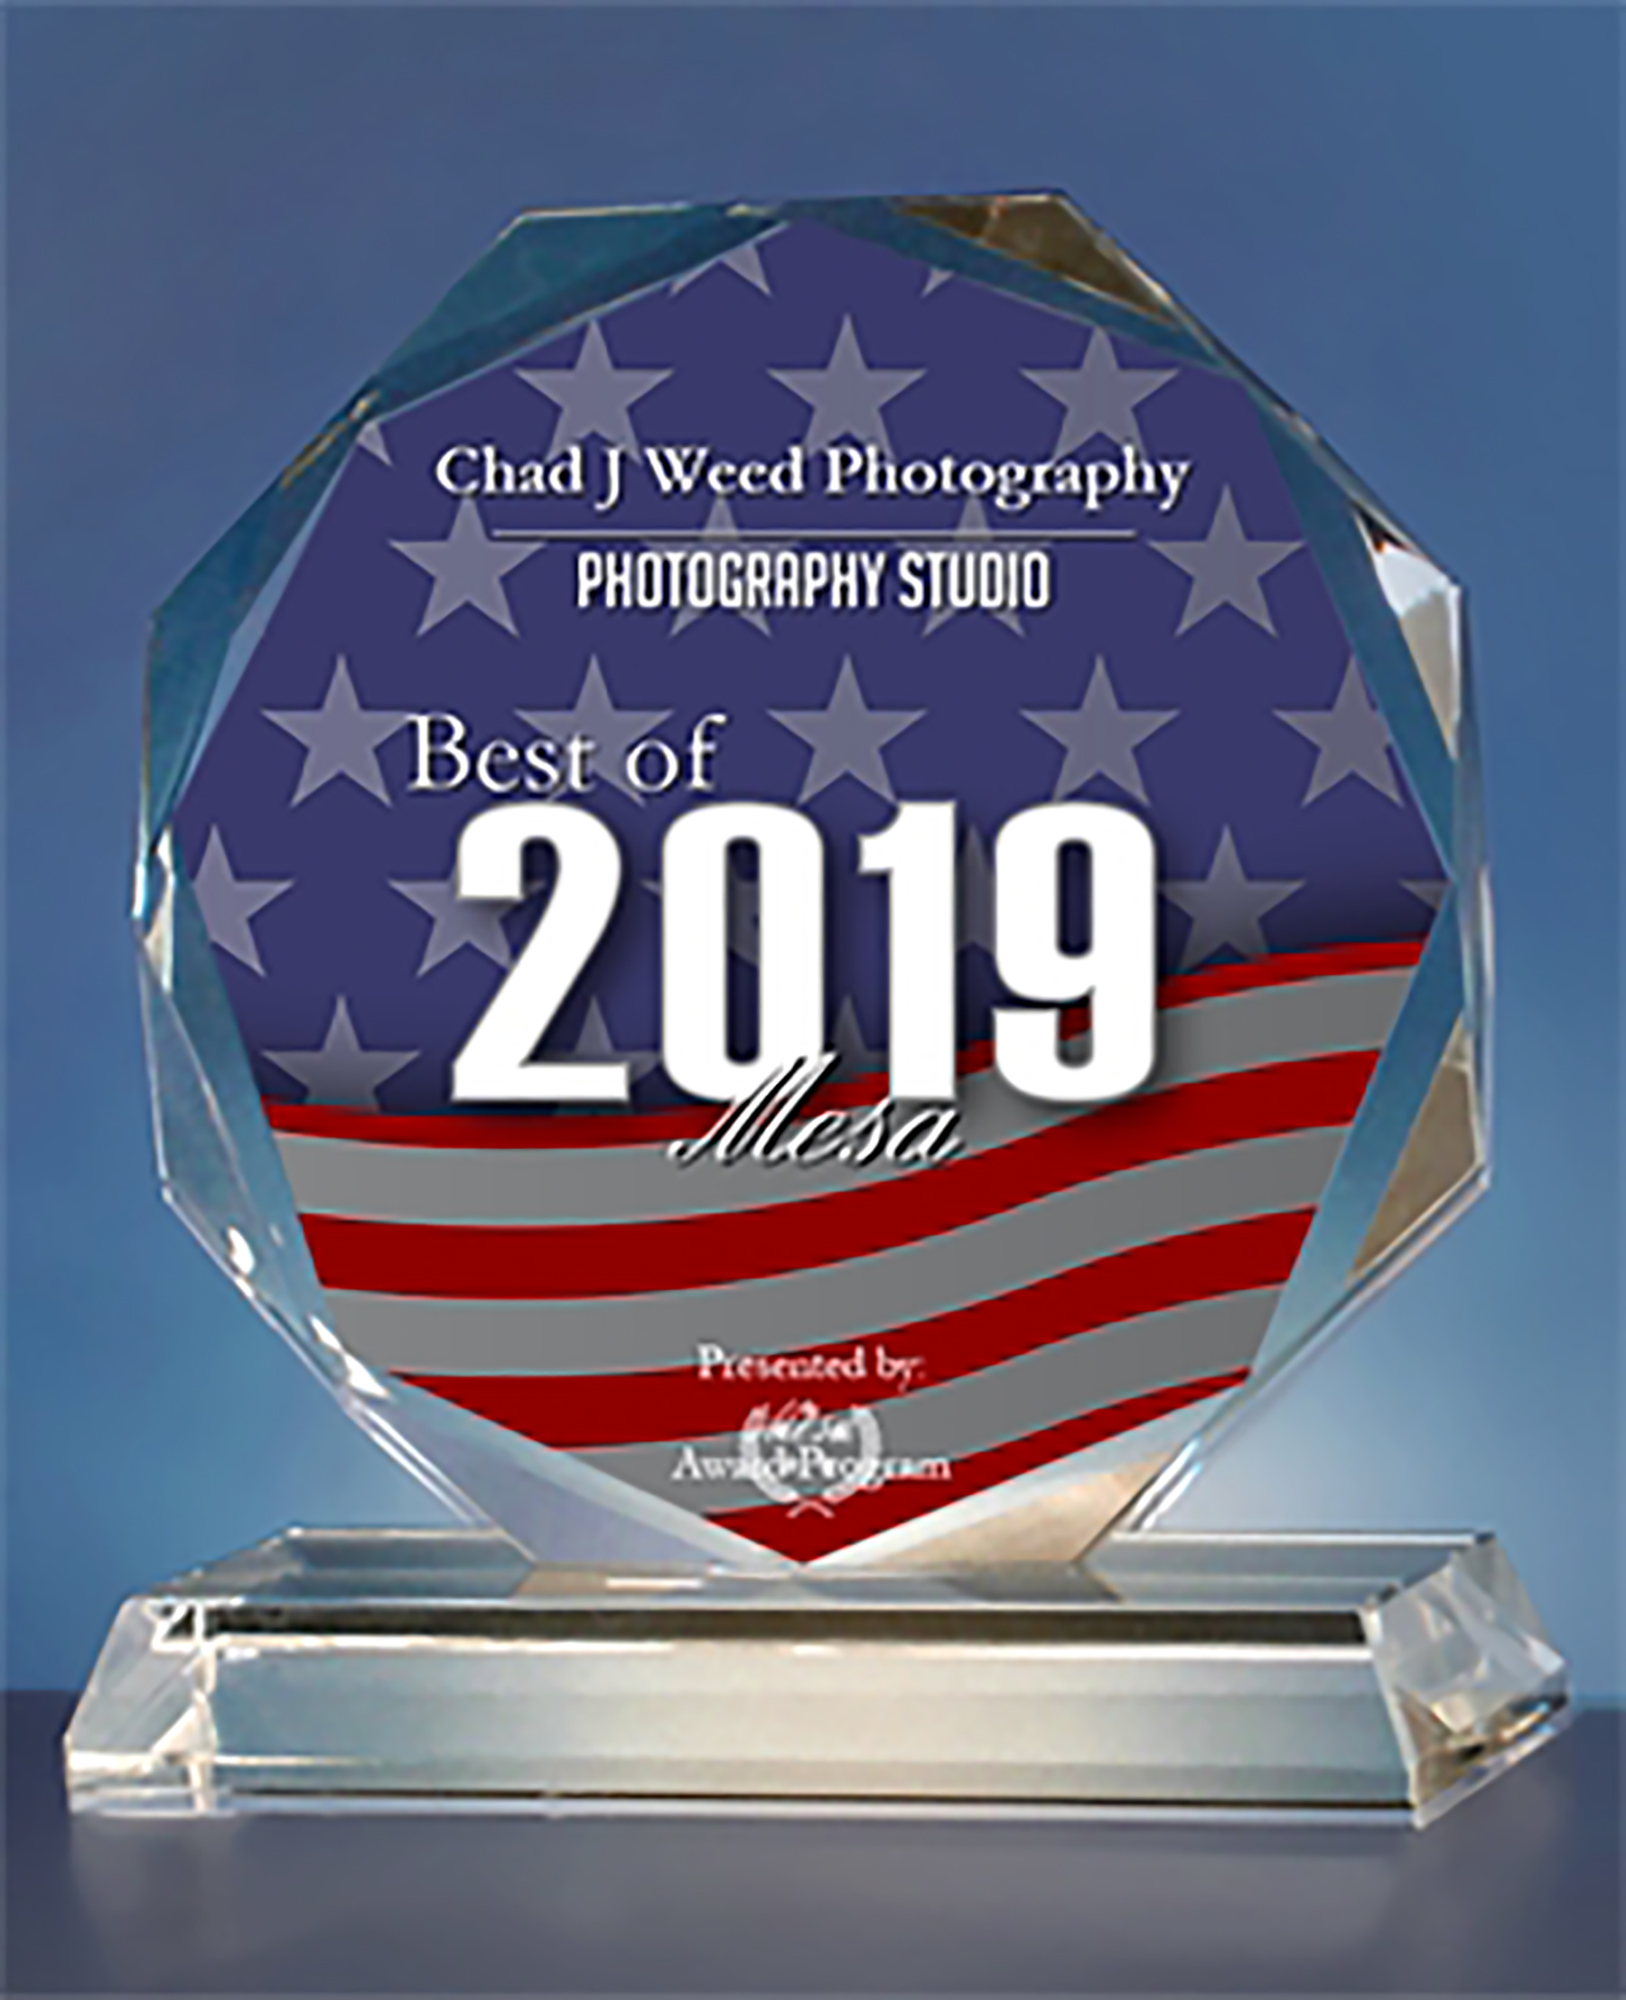 Best of Mesa 2019 Photography Studio - Chad J Weed Photography